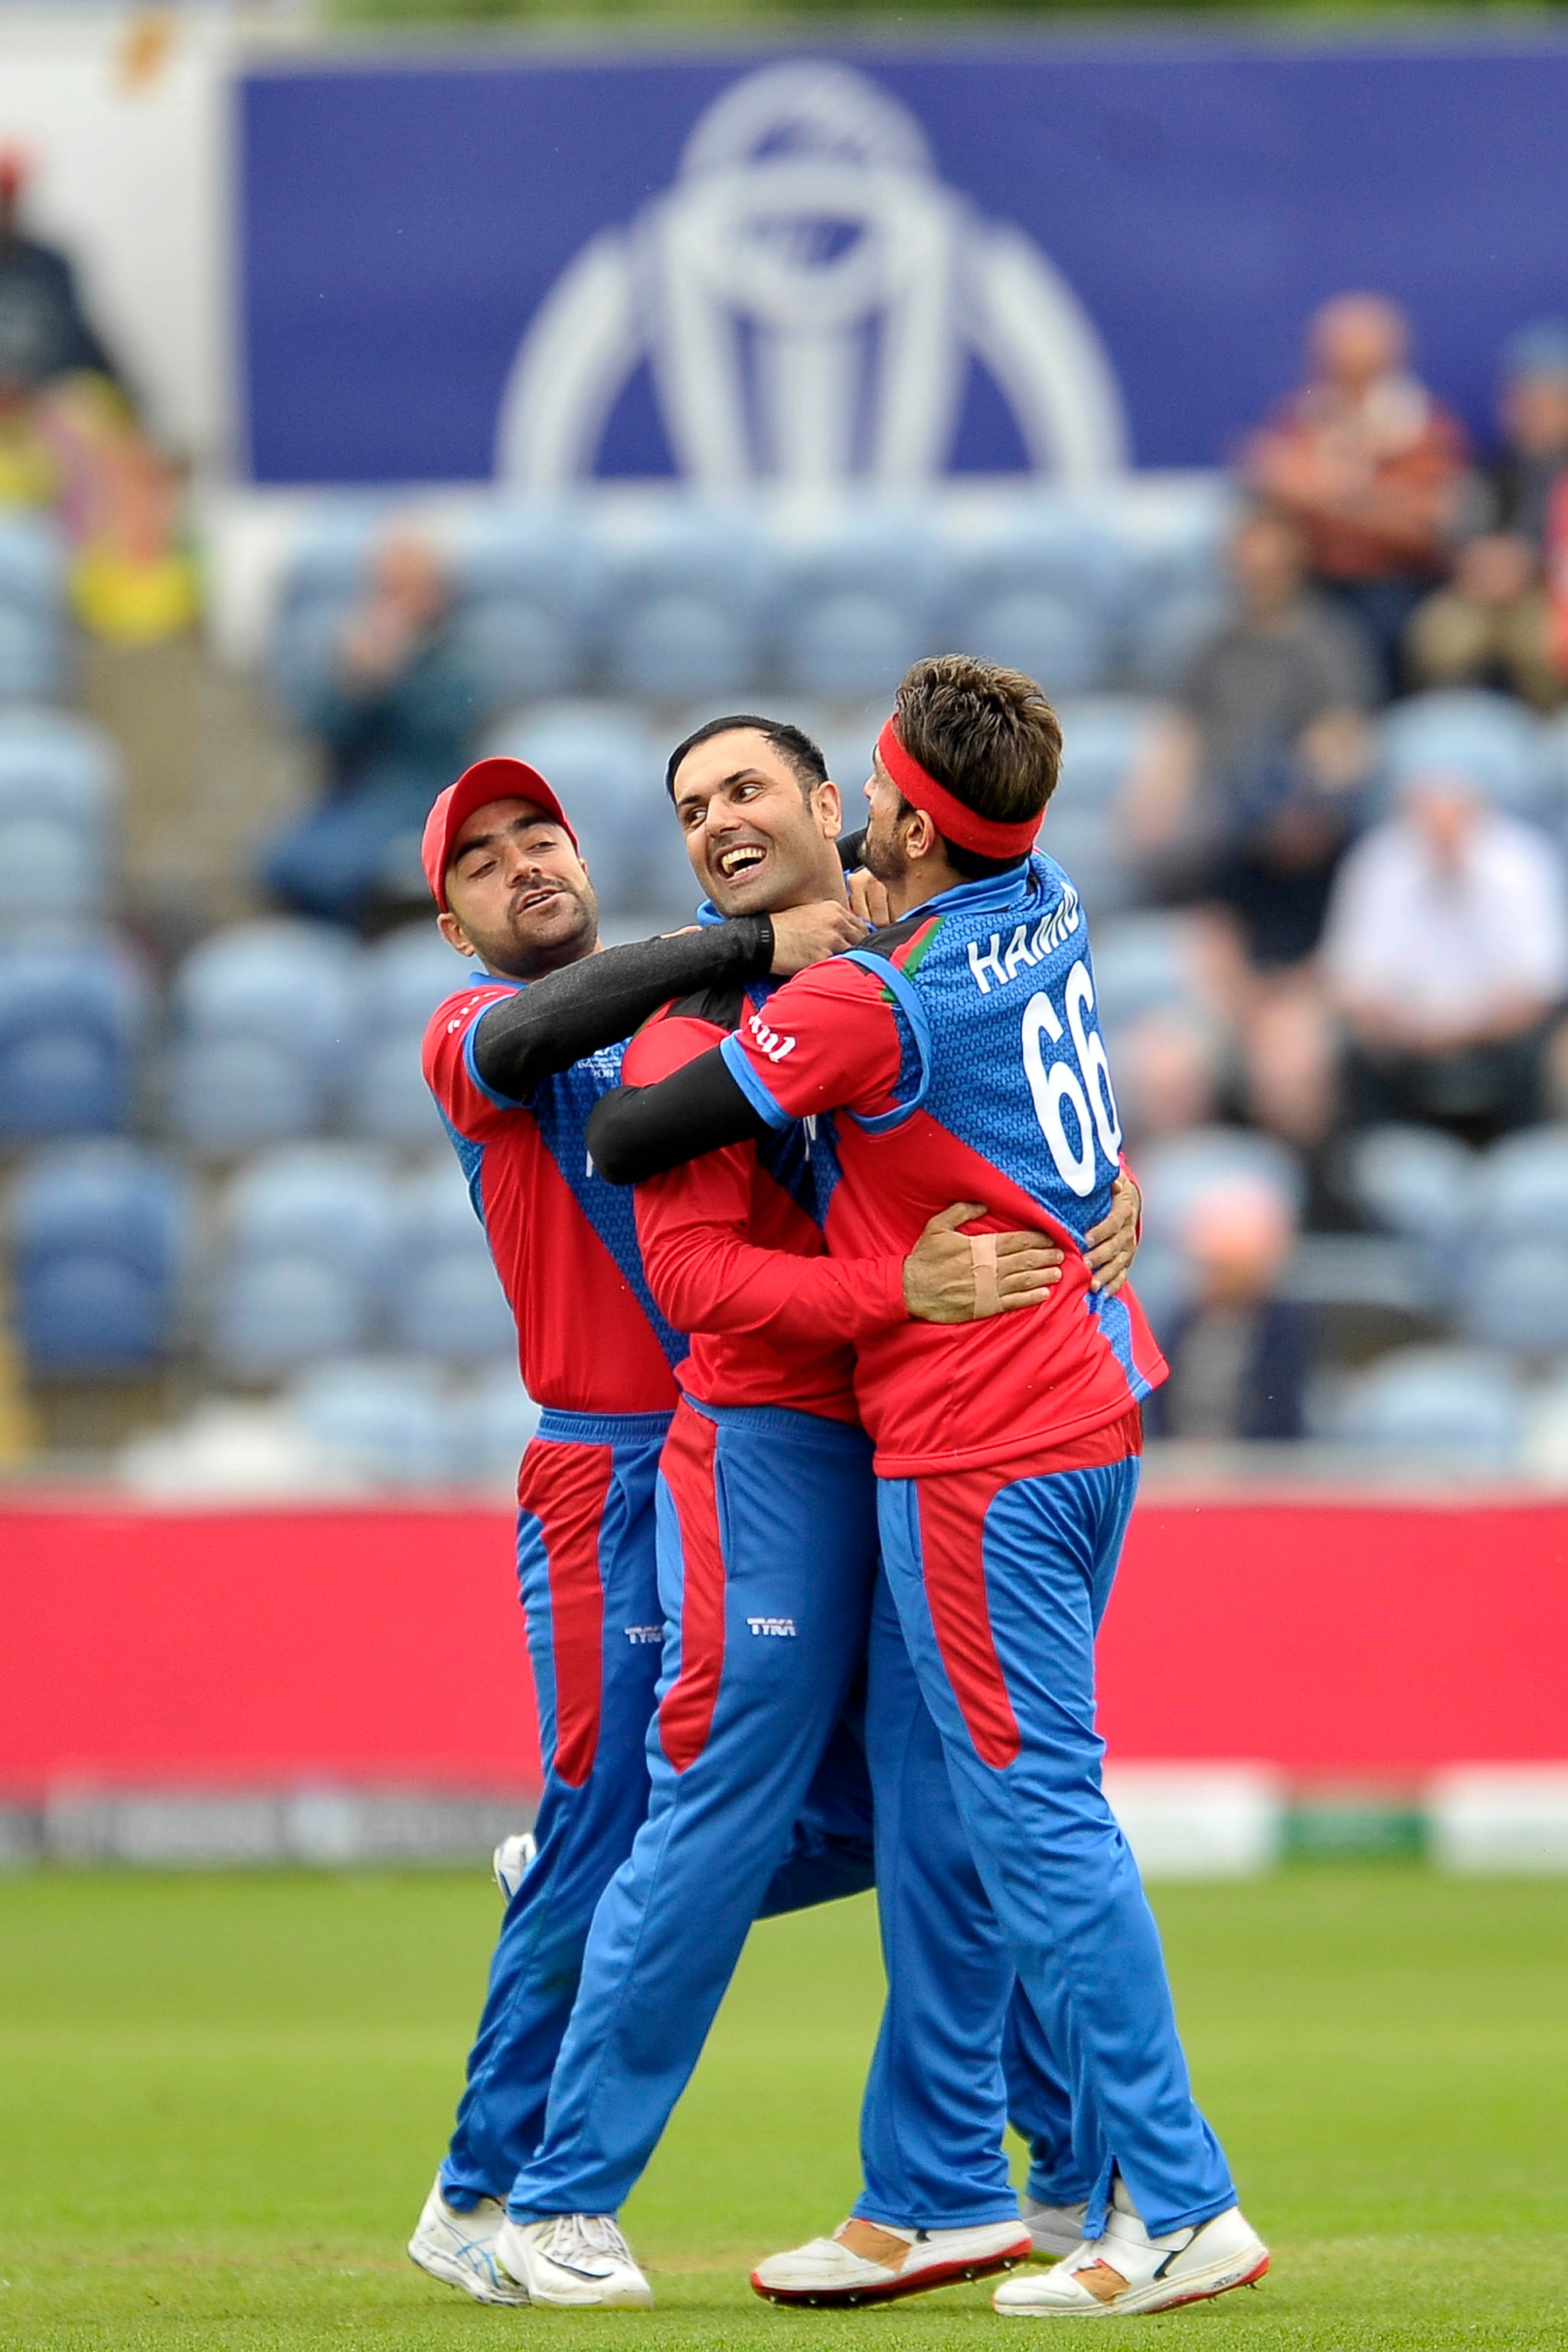 In Pics, Sri Lanka vs Afghanistan, Match 7 at Cardiff